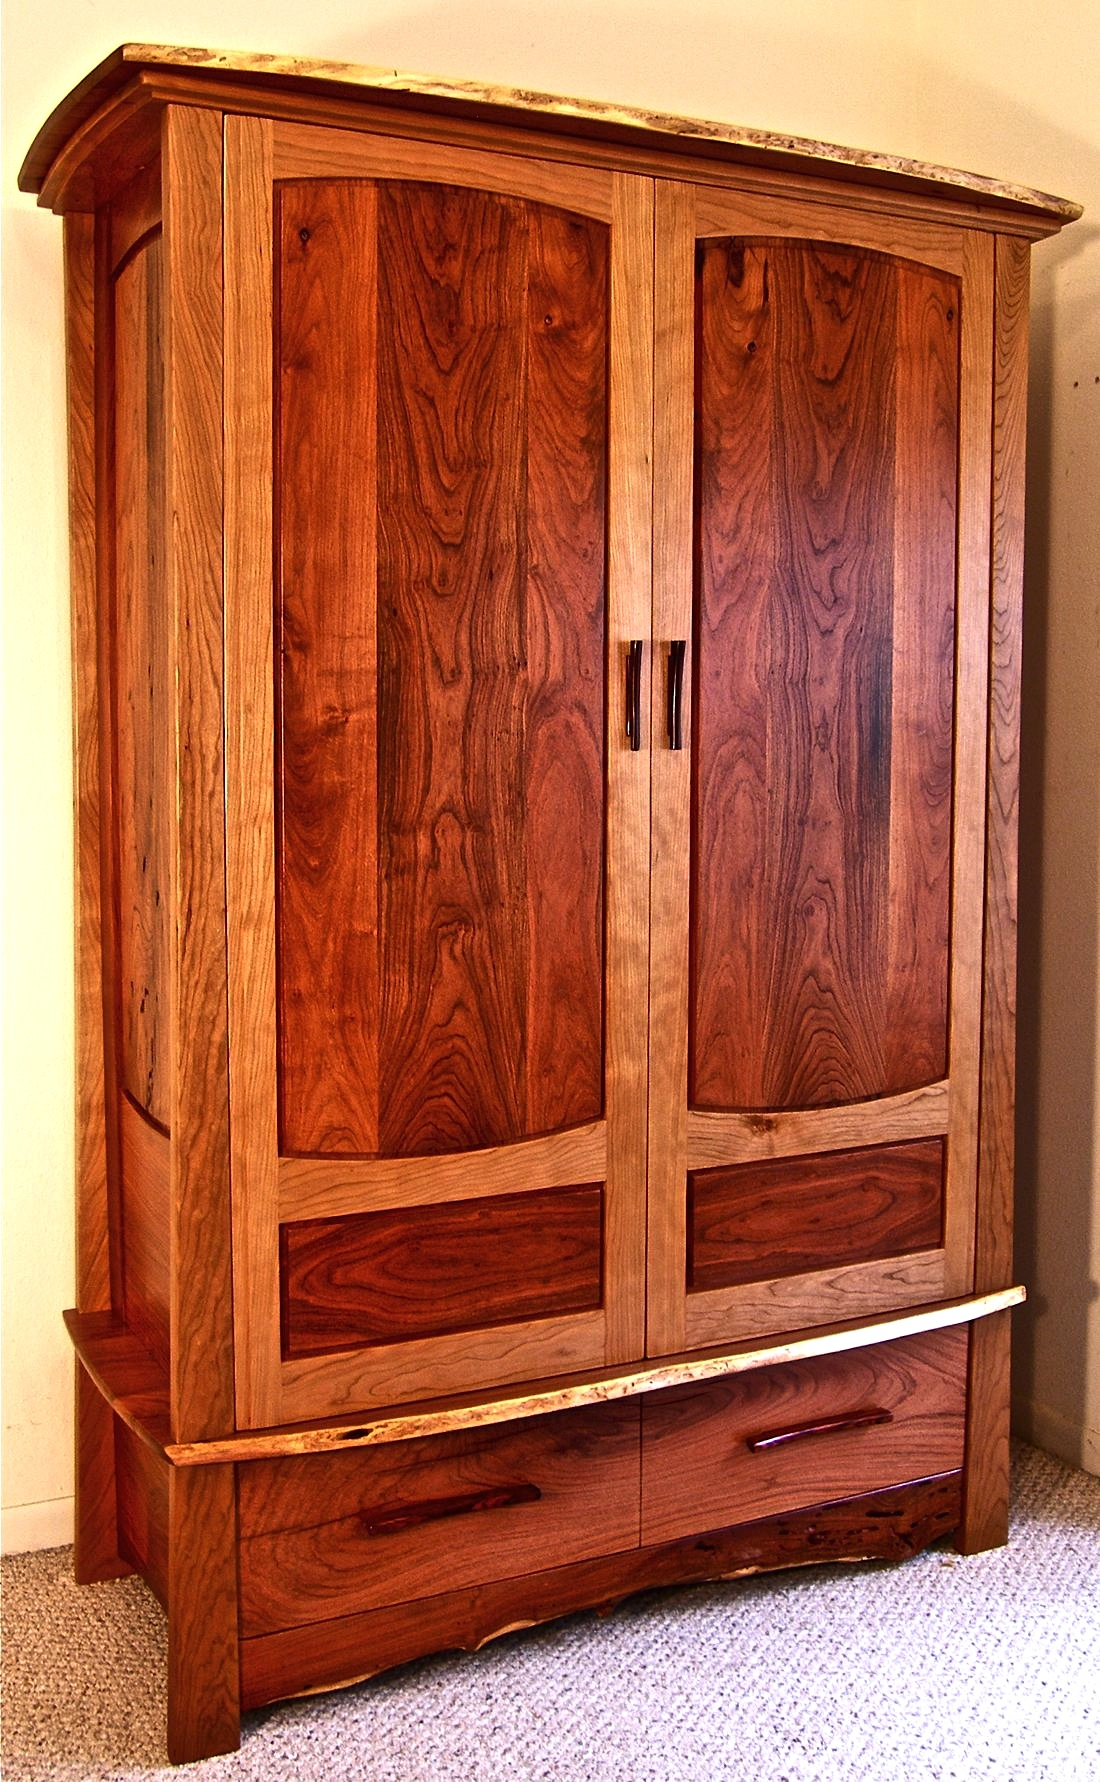 woodwork free armoire furniture plans pdf plans. Black Bedroom Furniture Sets. Home Design Ideas